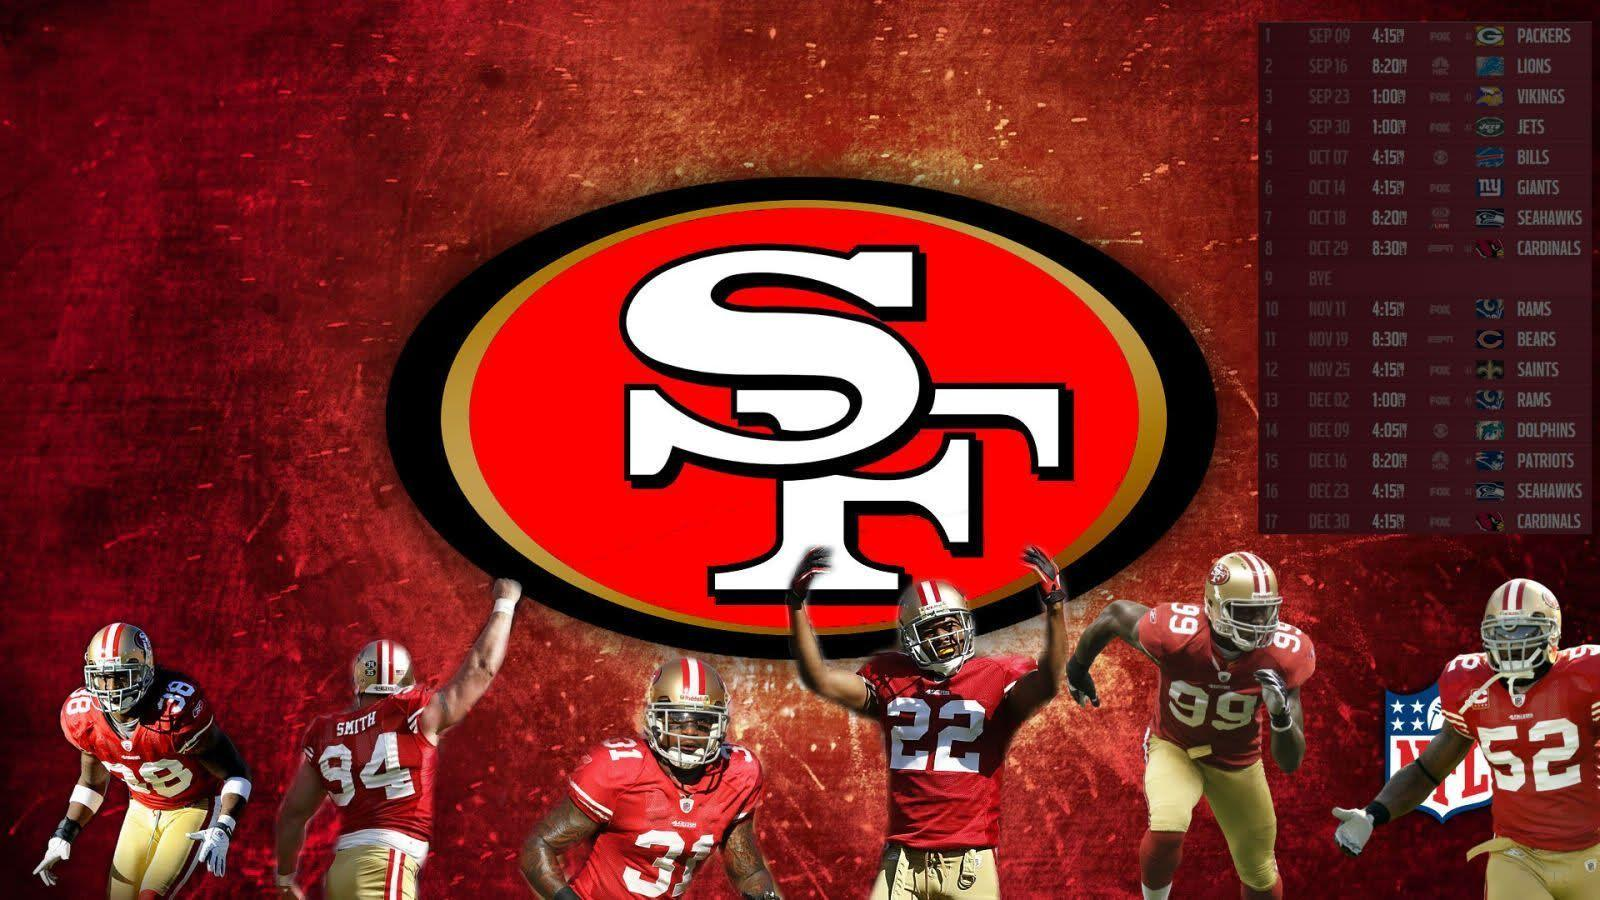 Free 49ers wallpapers your phone wallpaper cave 49ers phone wallpaper 9573 wallpapers free coolz hd wallpaper voltagebd Gallery